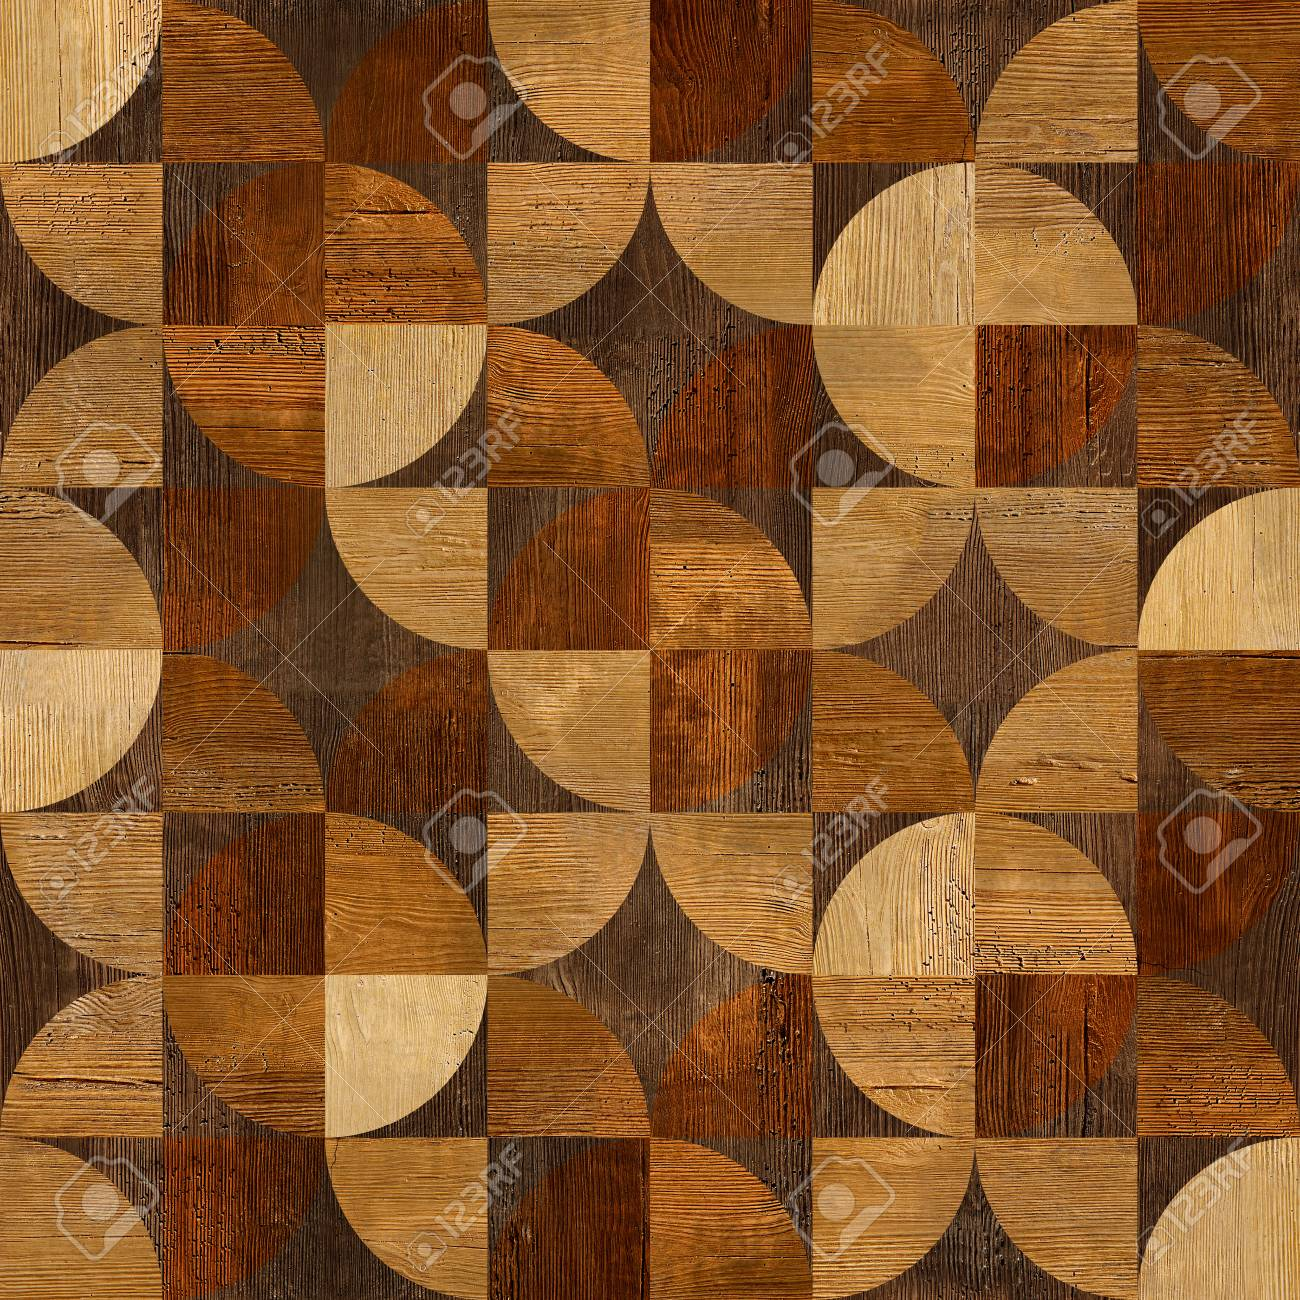 Abstract paneling pattern - seamless background - 37206952